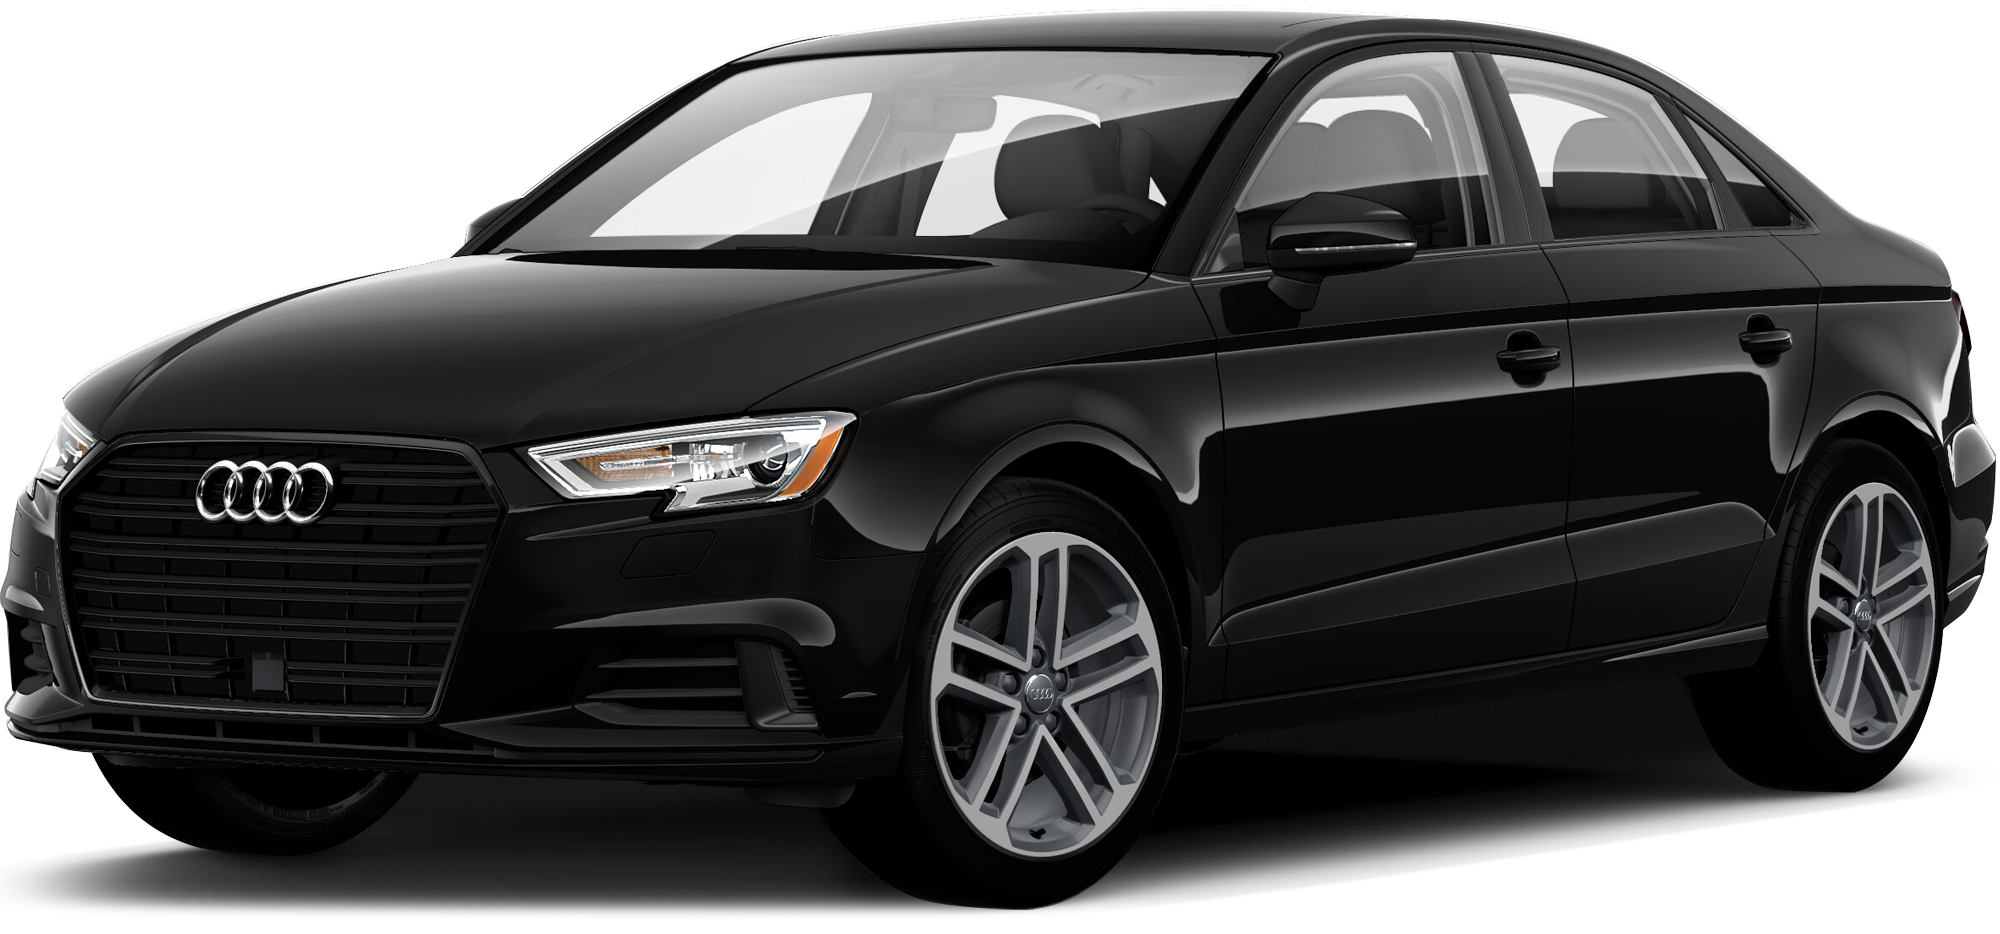 Audi A3 Lease Deal Image